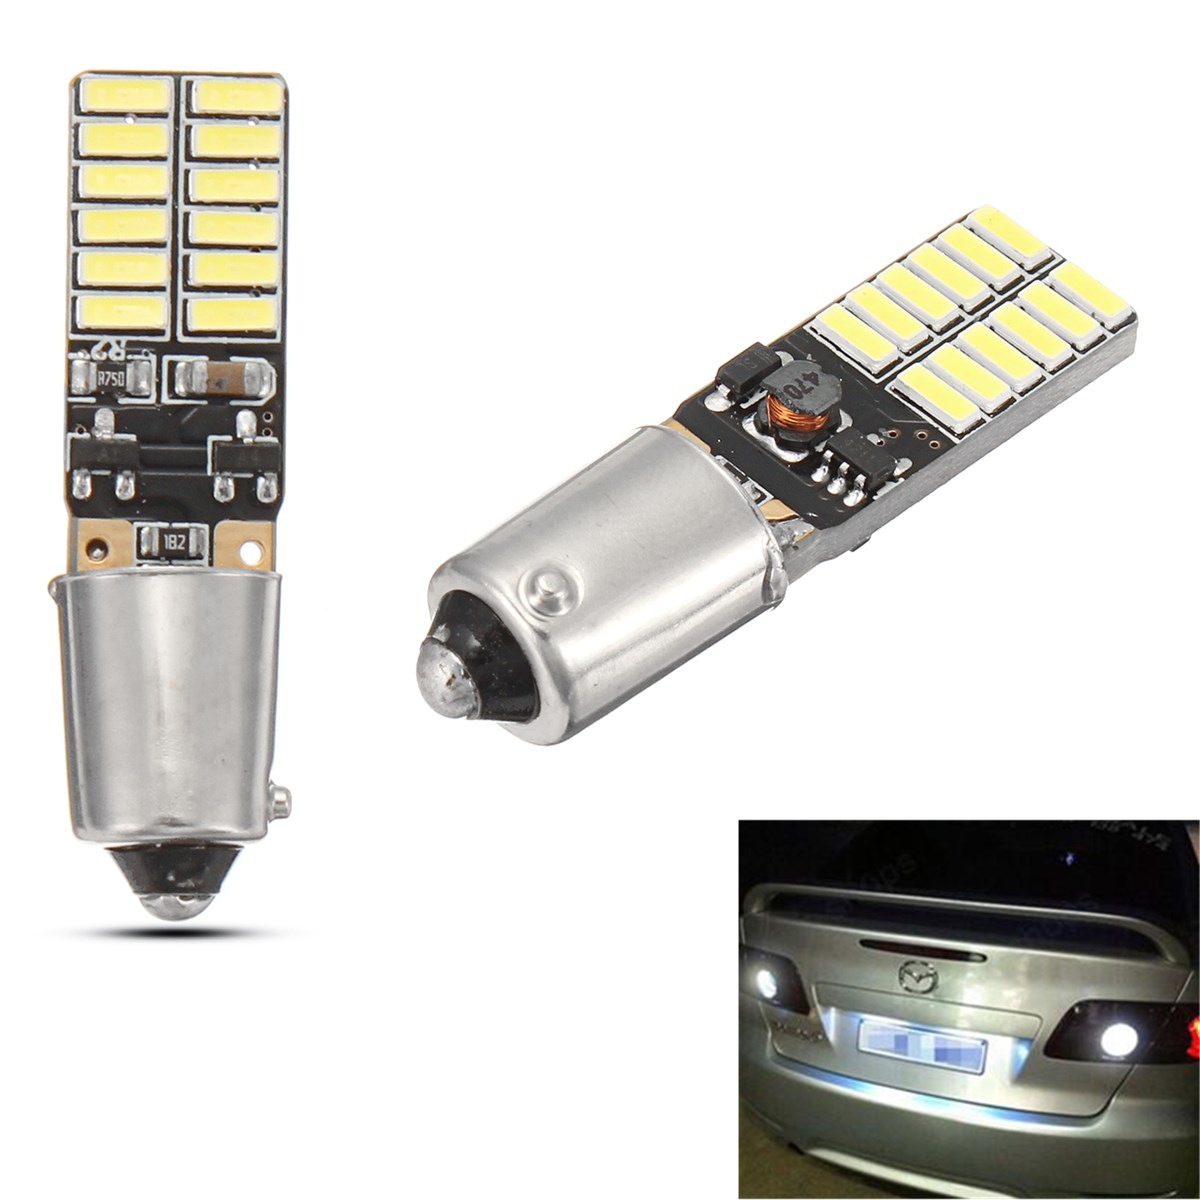 2pcs <font><b>Bay9s</b></font> <font><b>H21W</b></font> 64136 24SMD 6500K Car <font><b>LED</b></font> Backup Lights For BMW For Audi For VW Car Backup Reserve Lights Bulb Tail Lamp image